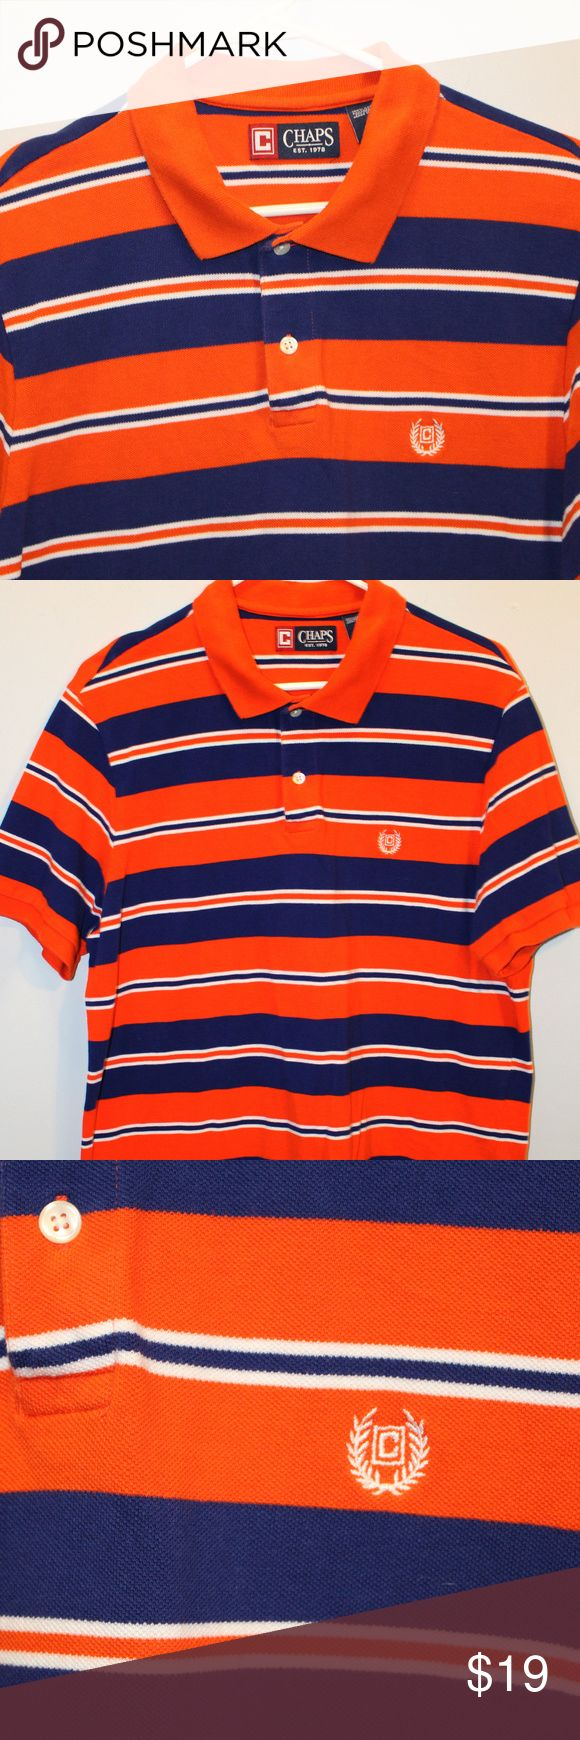 Men's Chaps Polo Shirt Sz Large Navy Orange Nice! This is a very nice Men's Chaps Shirt.  Polo style.  Navy Blue with Orange.  Chest logo.  Size Large.  Awesome shirt.  Might make a great shirt for a Denver Broncos fan (does not have any NFL logos on it).  NOTE: All button down shirts, polo shirts, and T Shirts go into a two bag sealed POLYMAILER (ACCEPTABLE PER POSHMARK POLICY). Generally 2XL and under. Chaps Shirts Polos